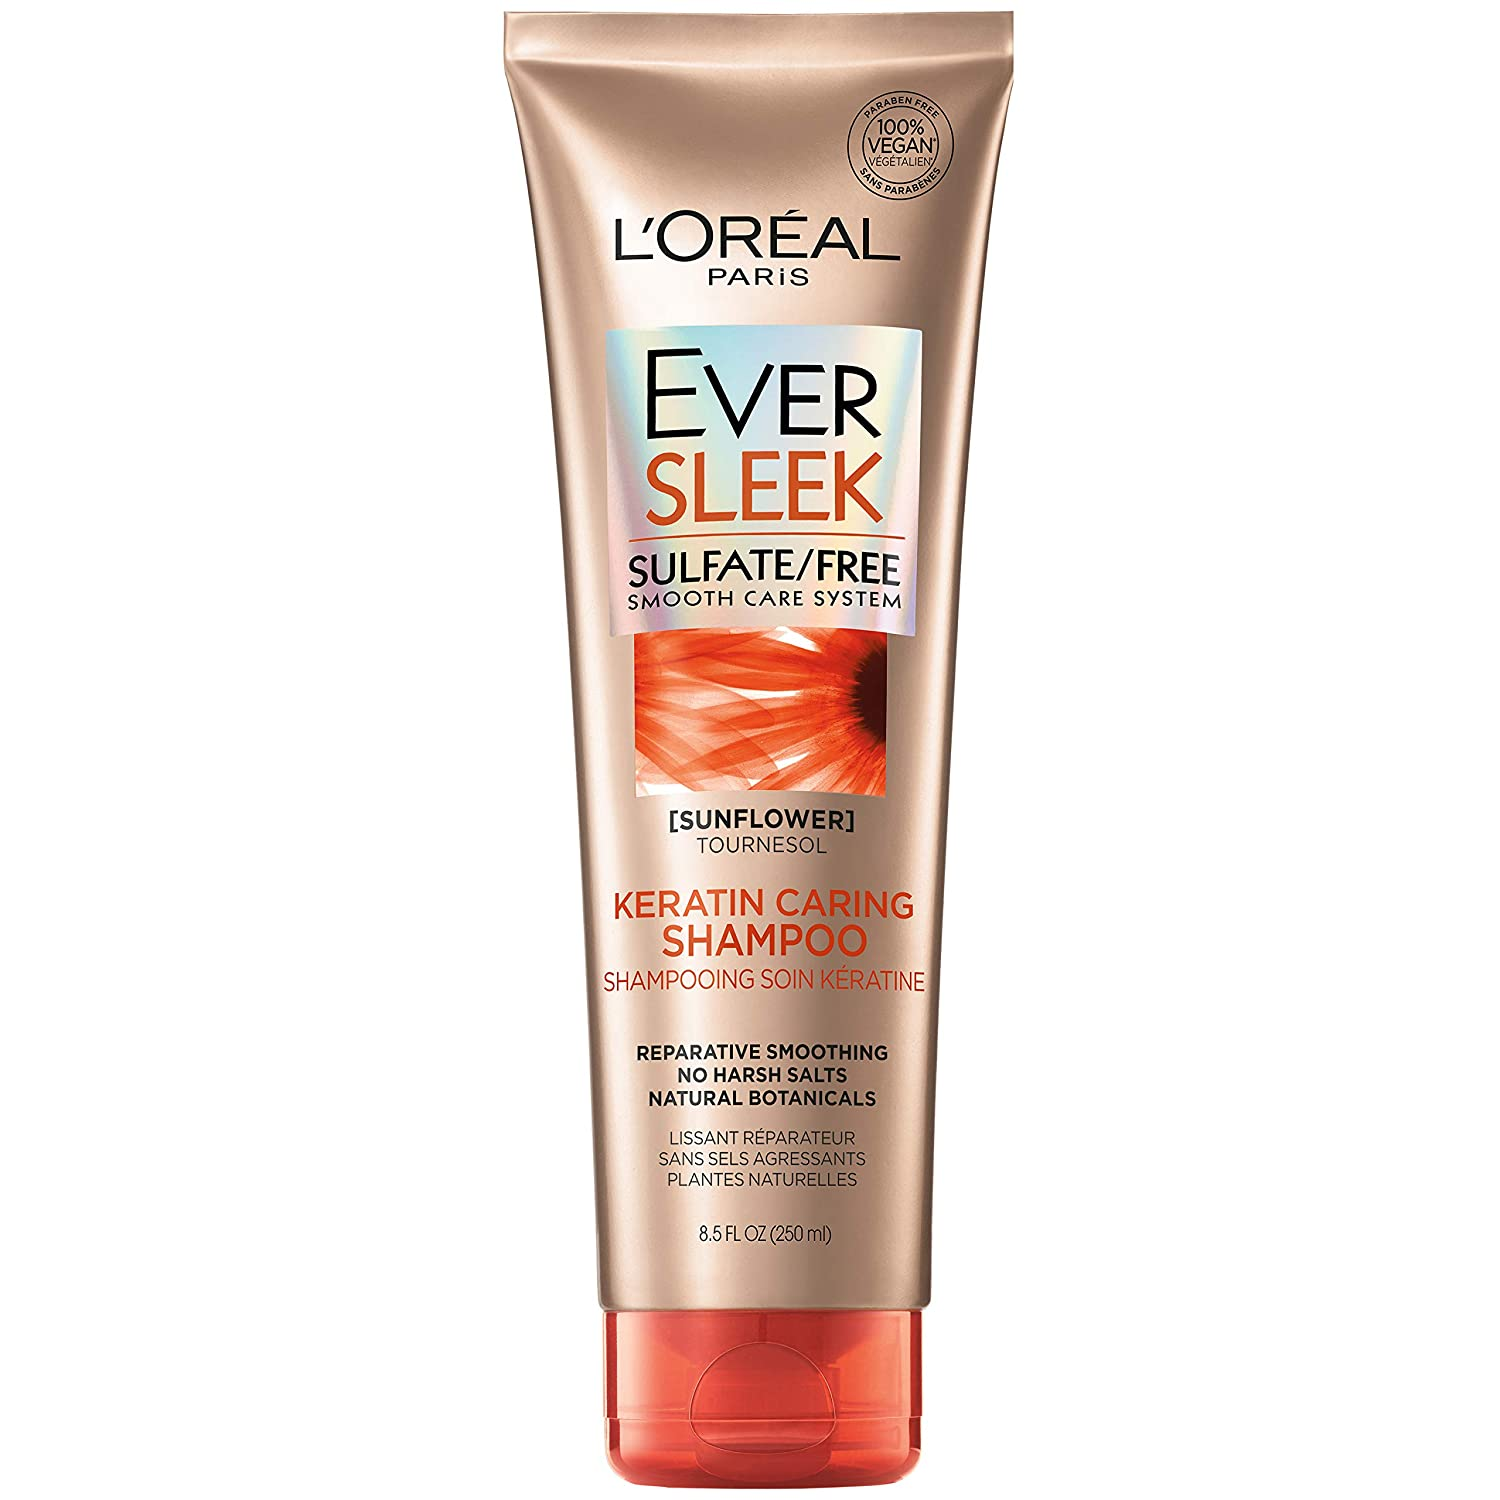 L'Oreal Paris EverSleek Sulfate Free wit Our shop OFFers the best service Caring Keratin Over item handling ☆ Shampoo